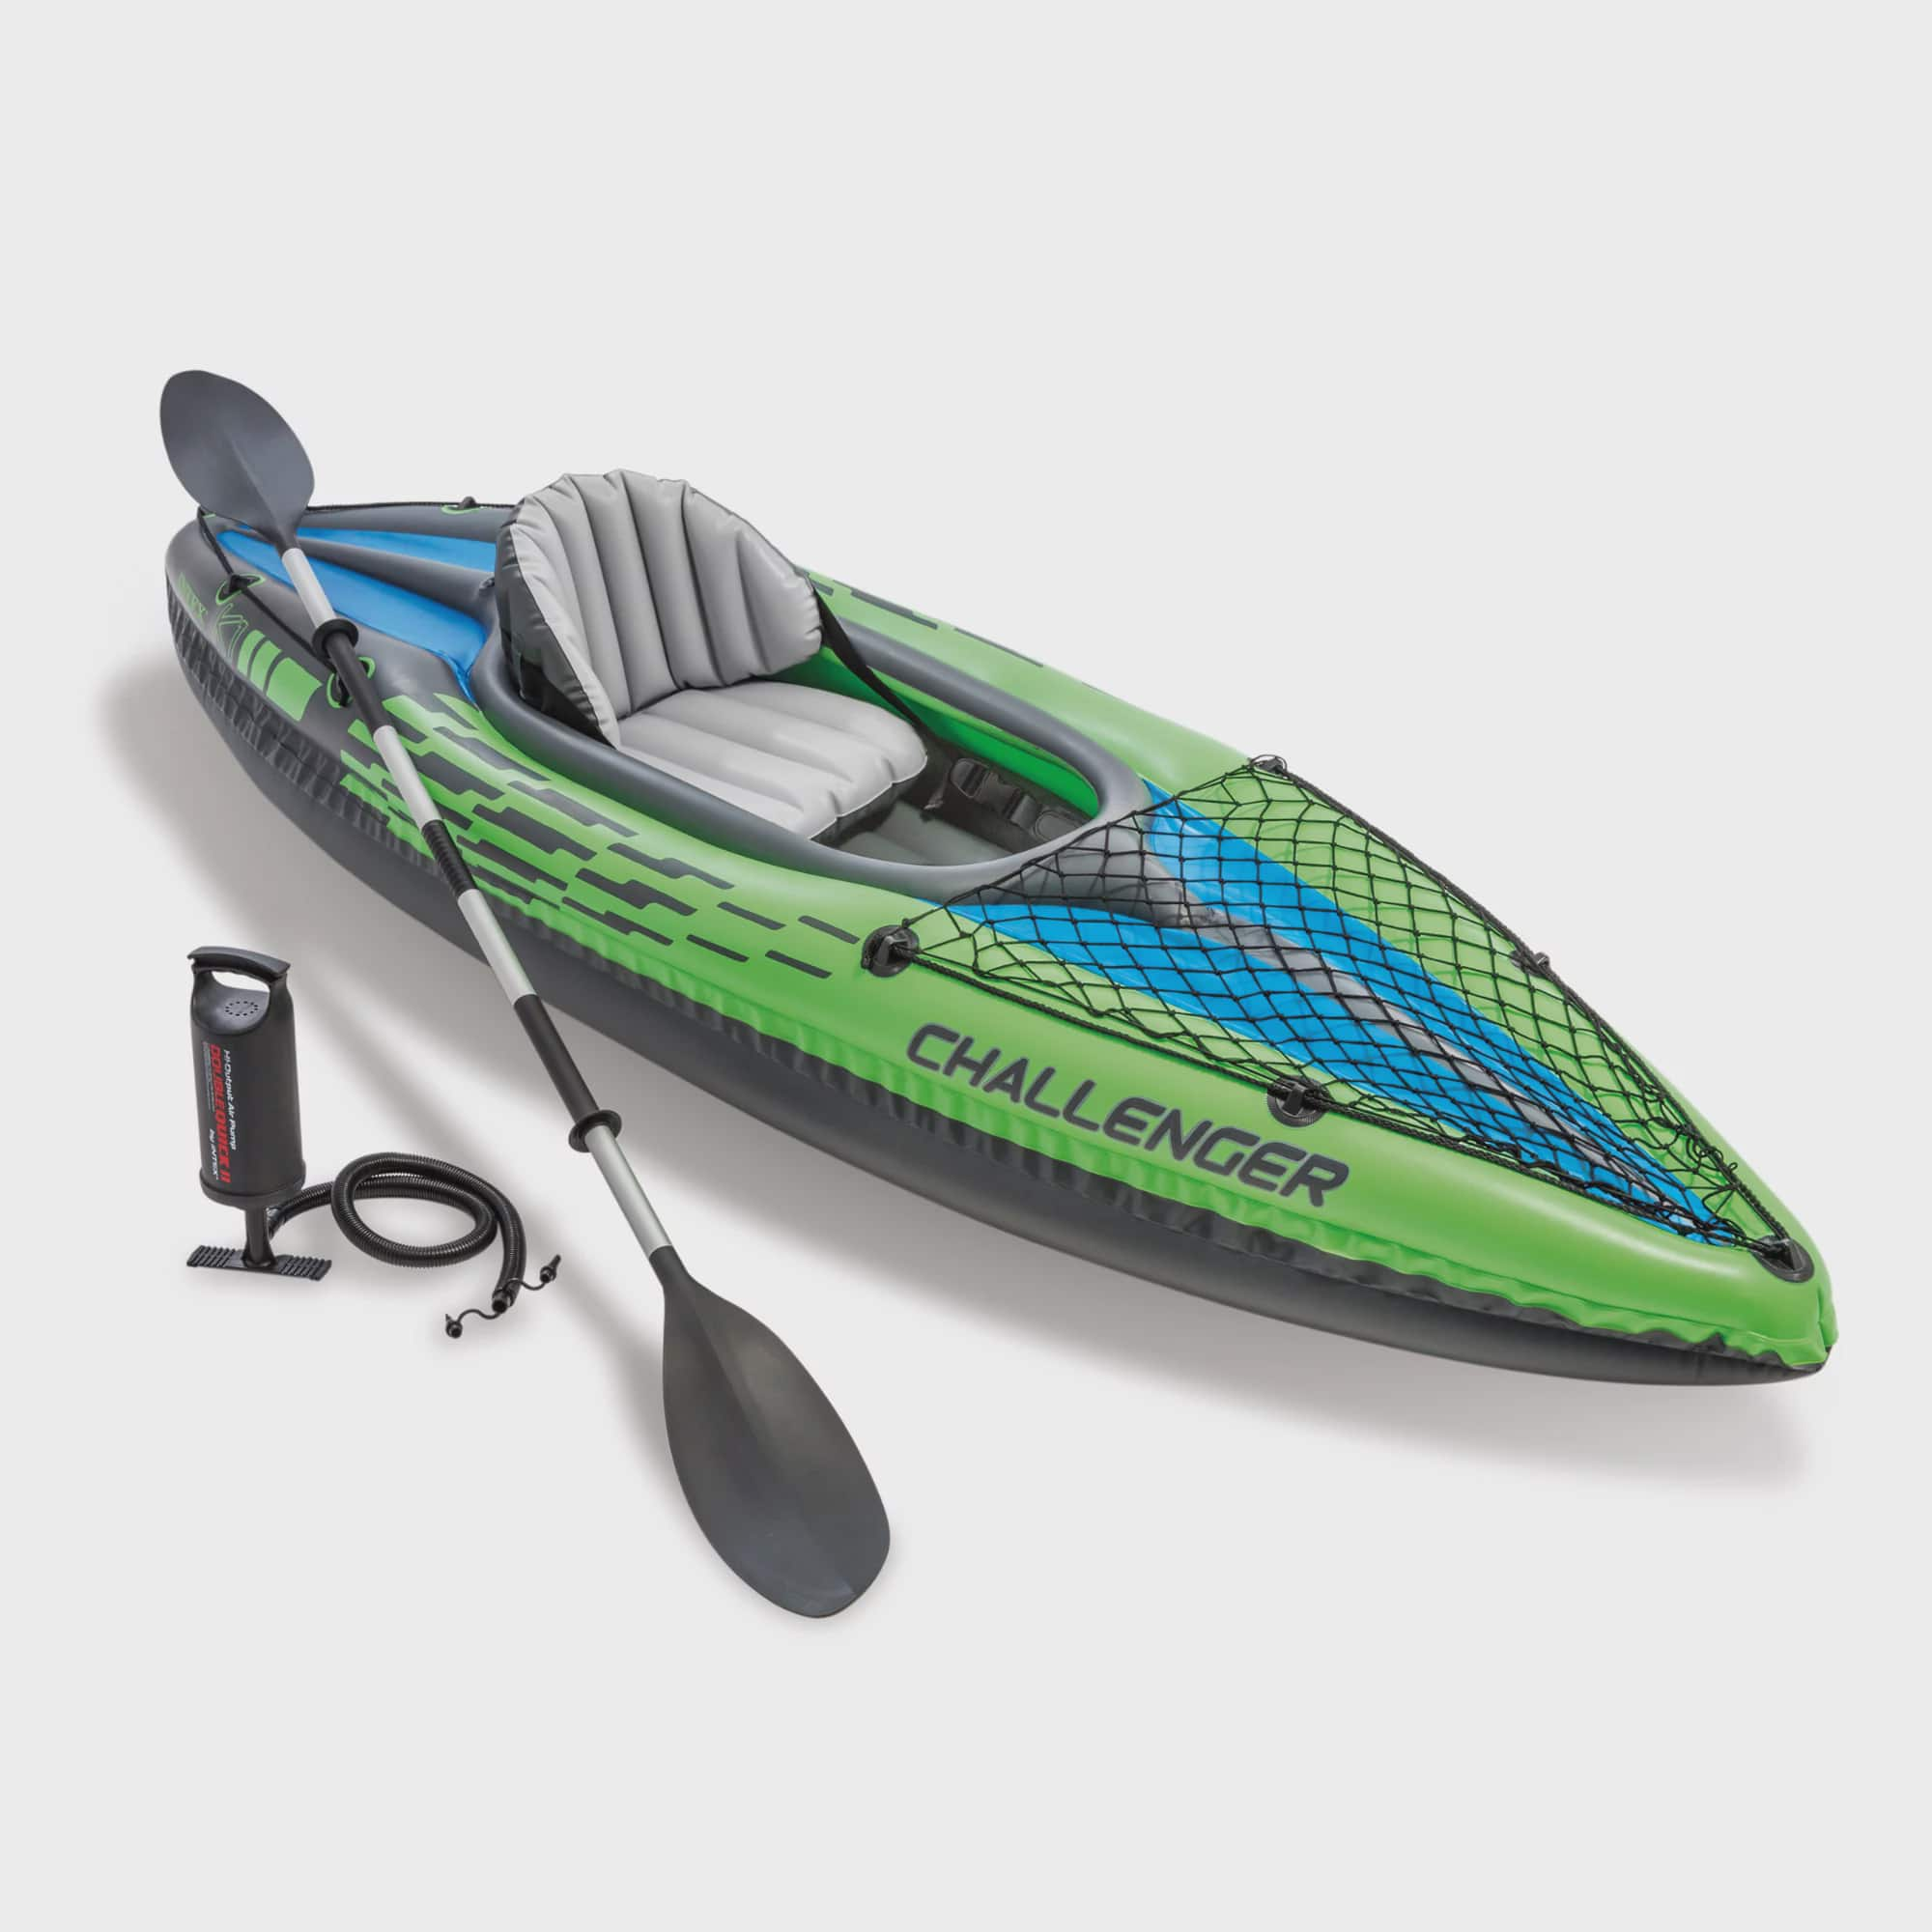 Intex Challenger K1 Inflatable Kayak with Oar and Hand Pump by Intex